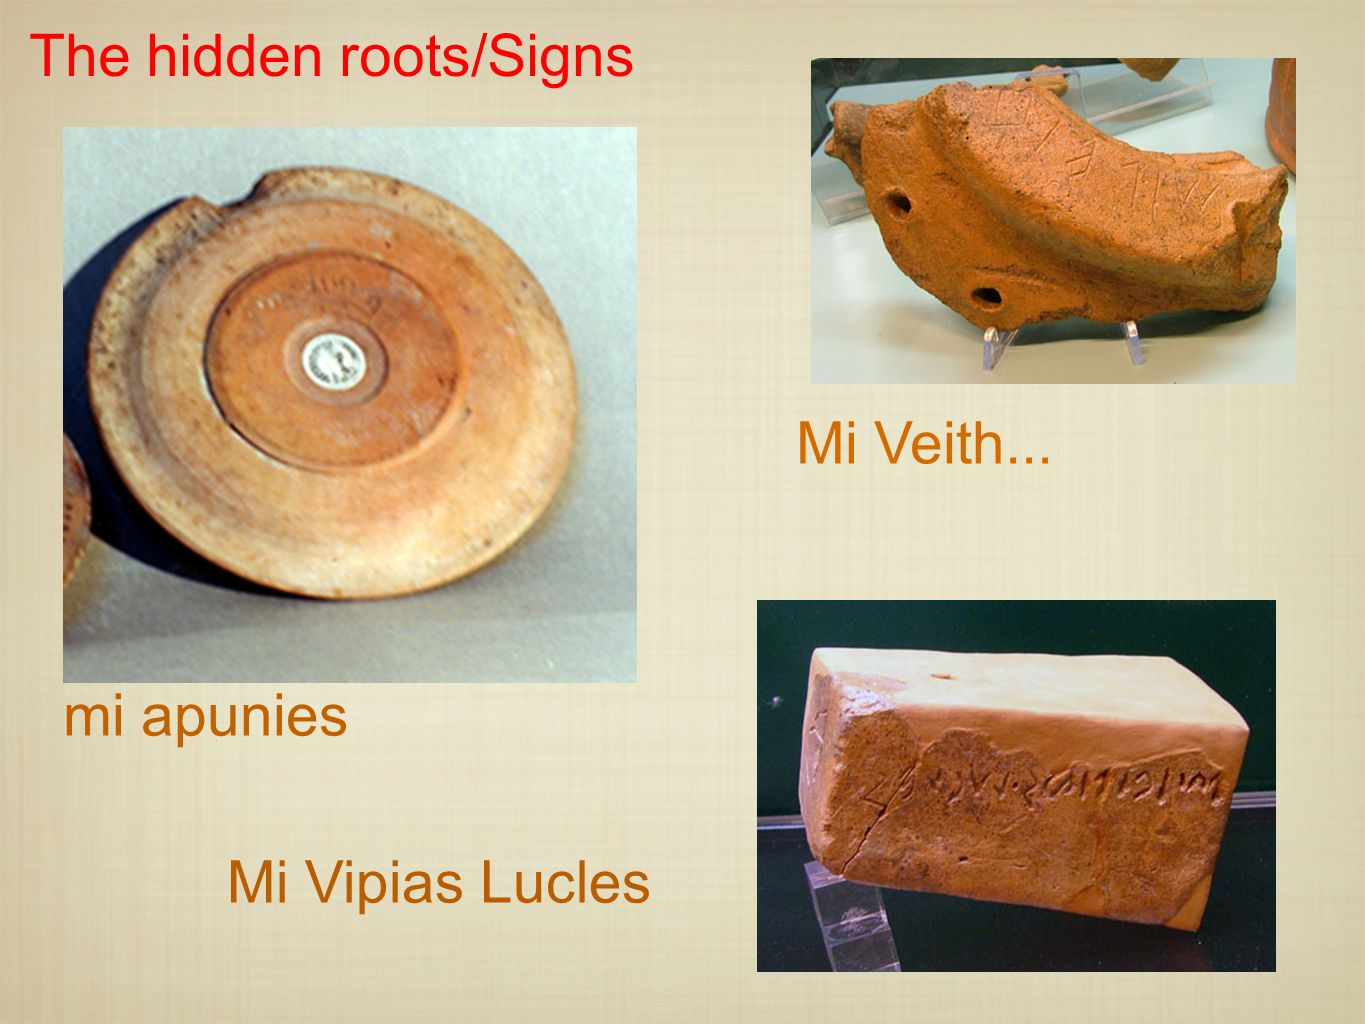 The hidden roots/Signs